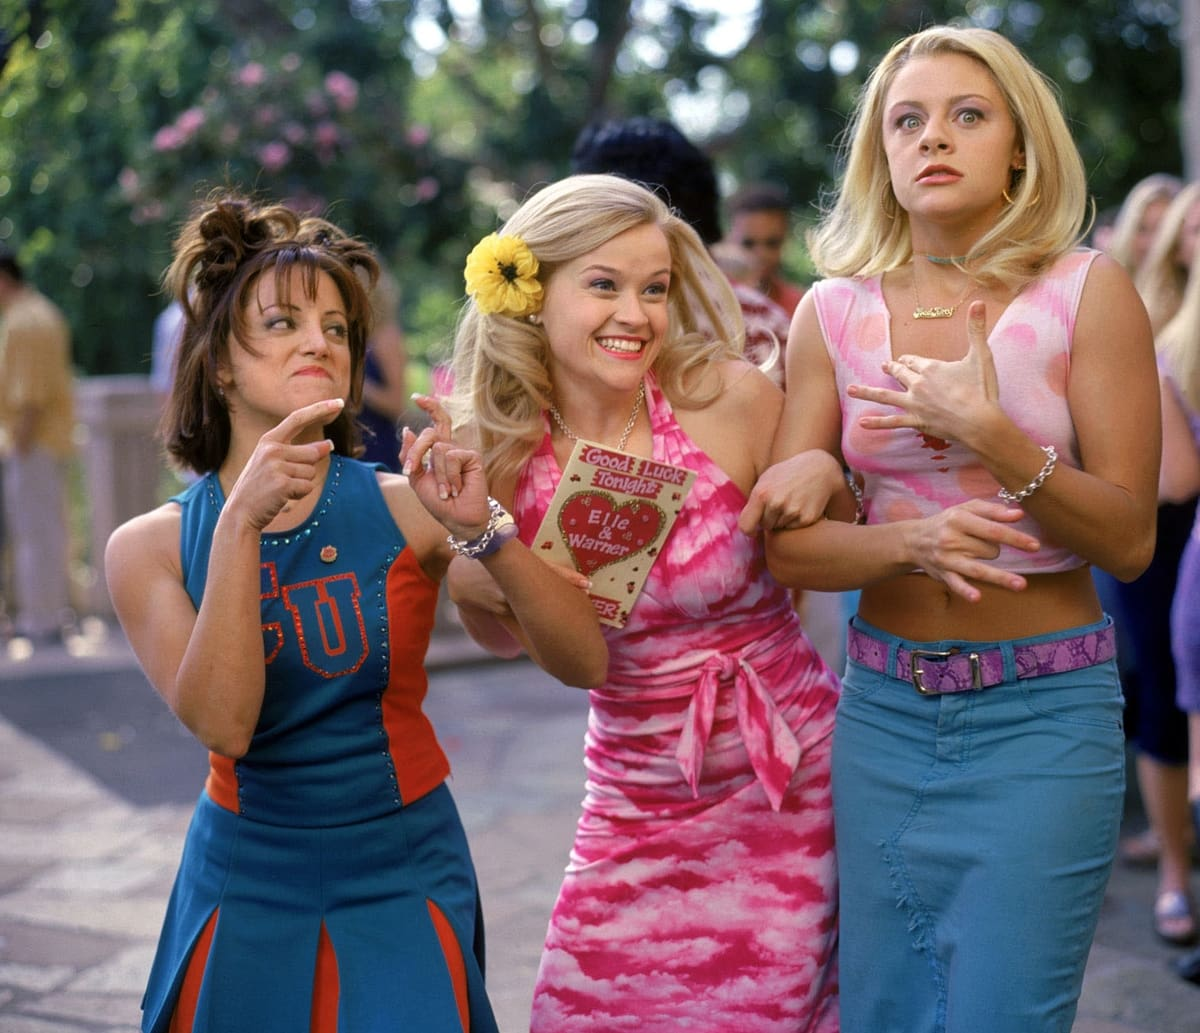 Reese Witherspoon as Elle Woods, Alanna Ubach as Serena McGuire, and Jessica Cauffiel as Margot in Legally Blonde